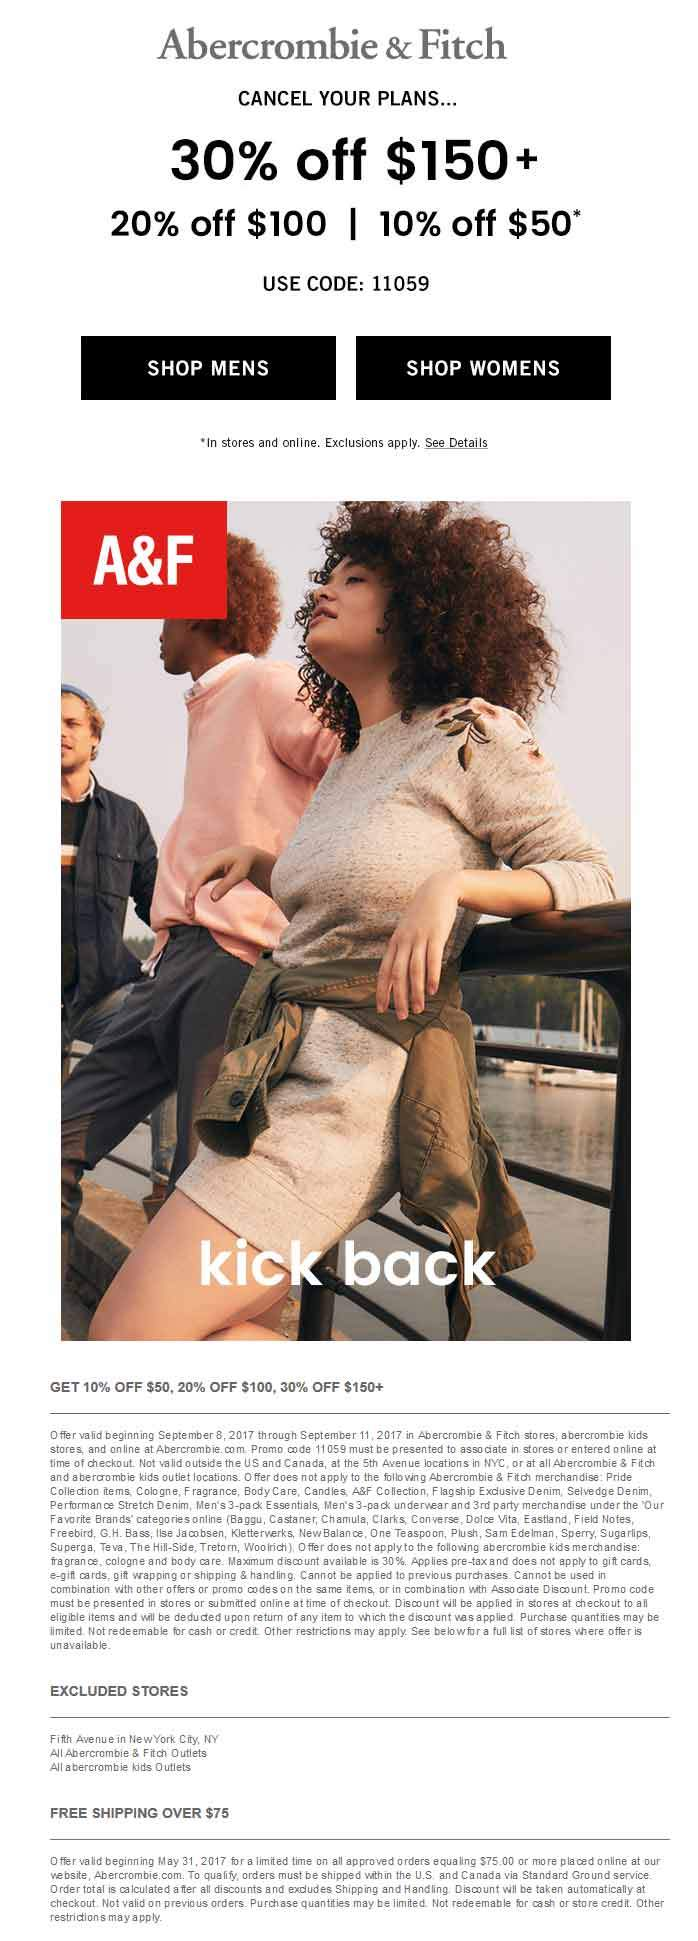 Abercrombie & Fitch Coupon March 2018 10-30% off $50+ at Abercrombie & Fitch, or online via promo code 11059